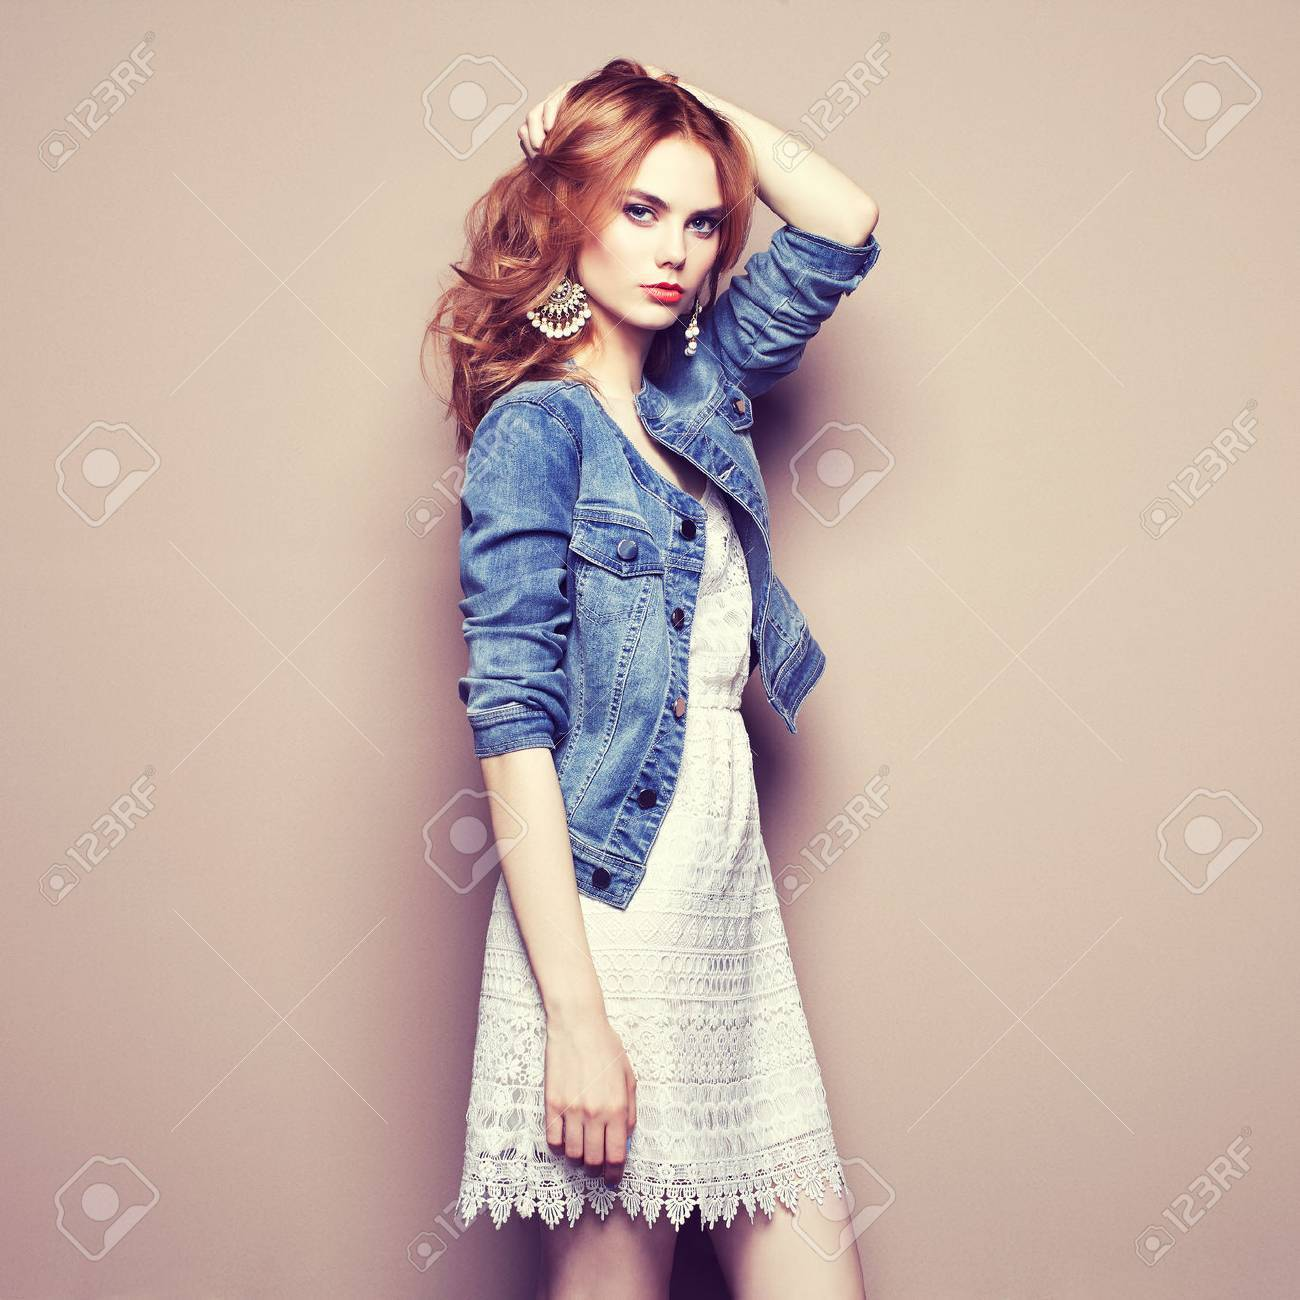 Fashion portrait of beautiful young woman in a summer dress. Beauty spring photo - 65173839